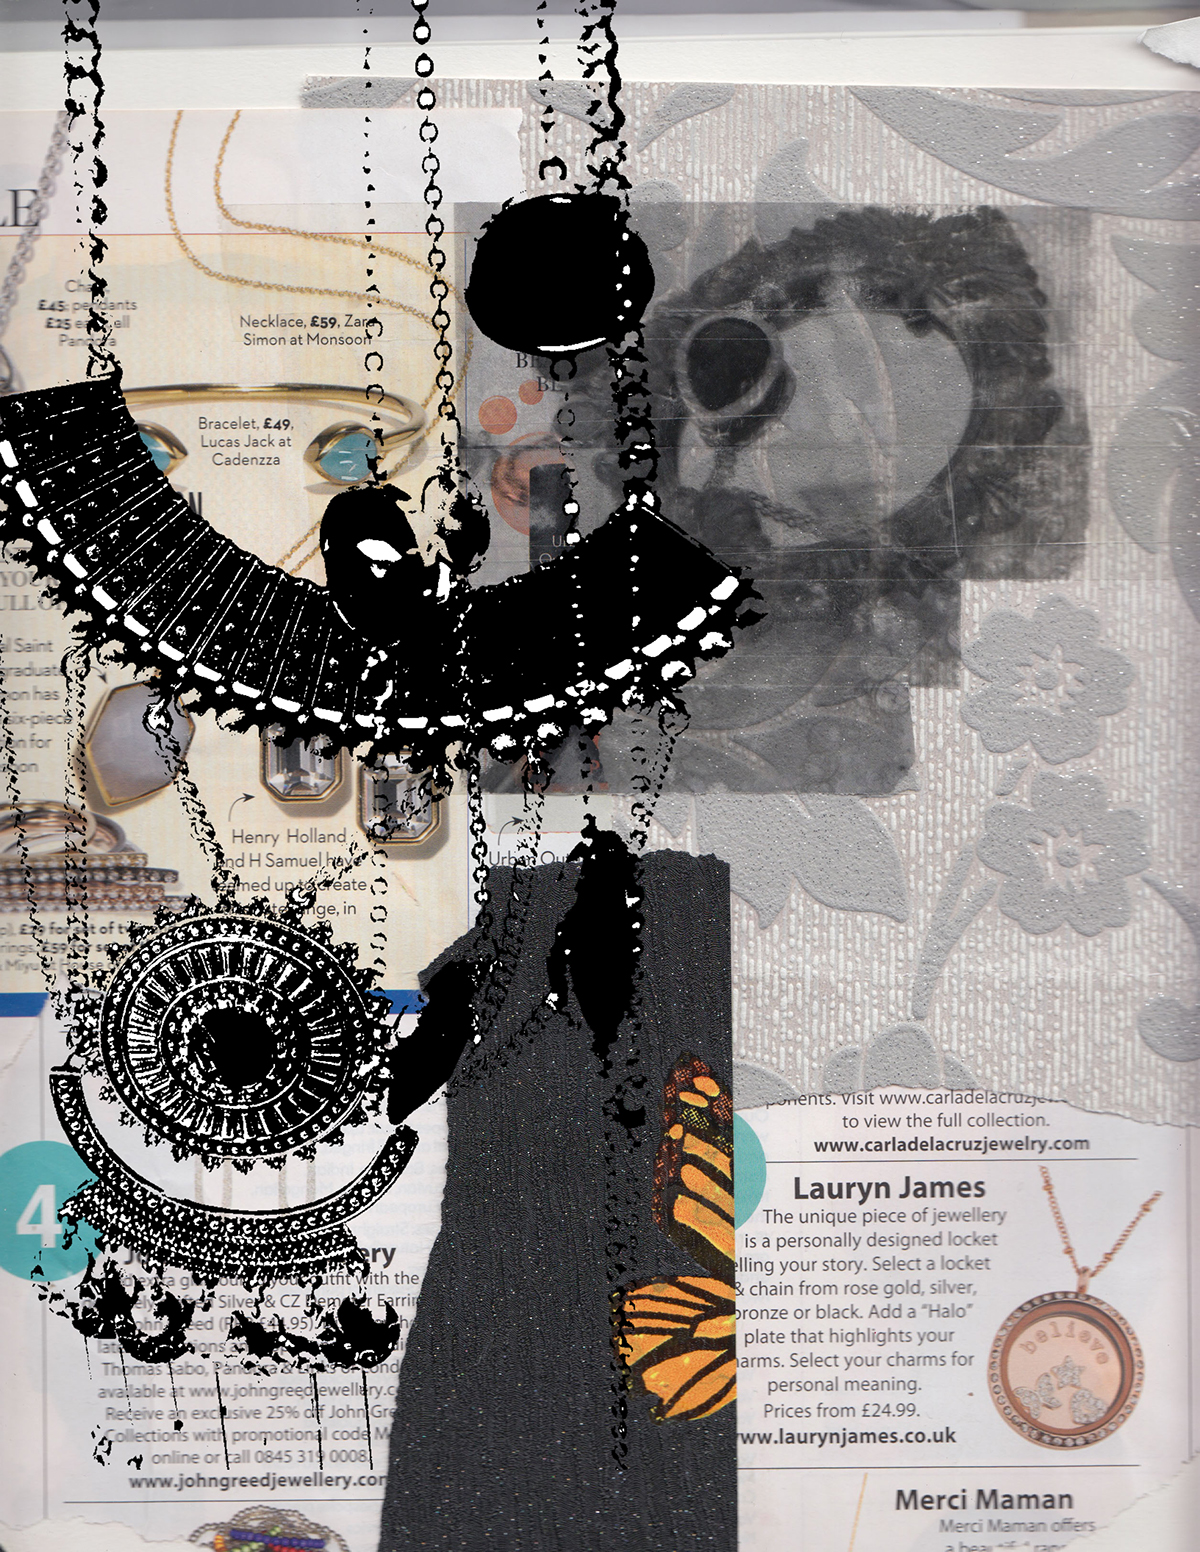 digital stencilling and collage on Behance